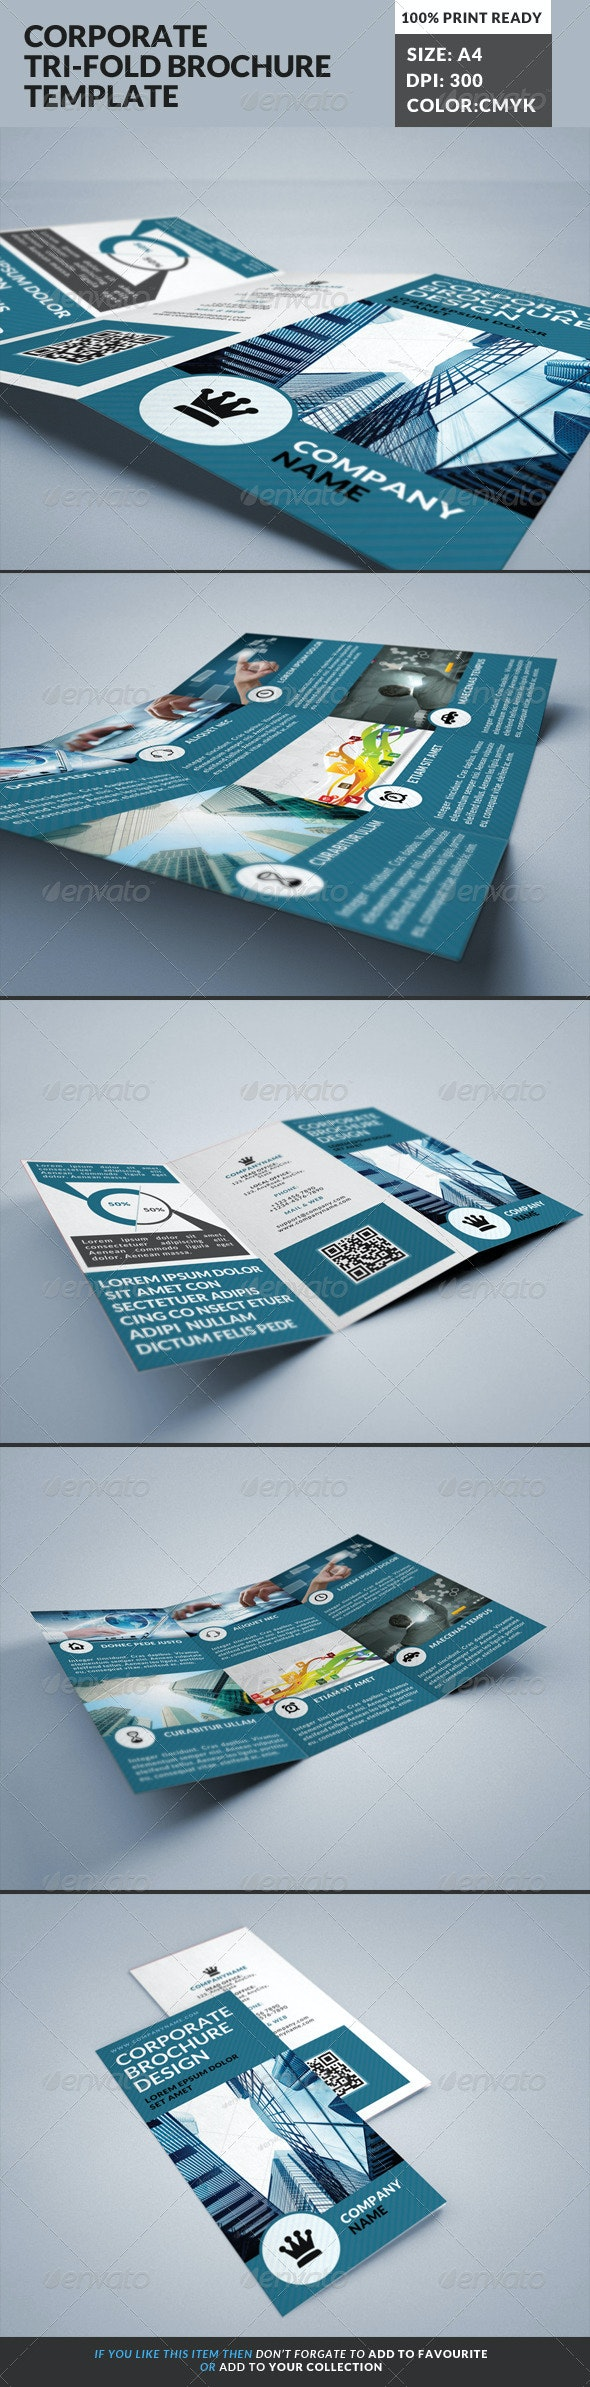 Corporate Tri-Fold Brochures Template 18 - Corporate Brochures